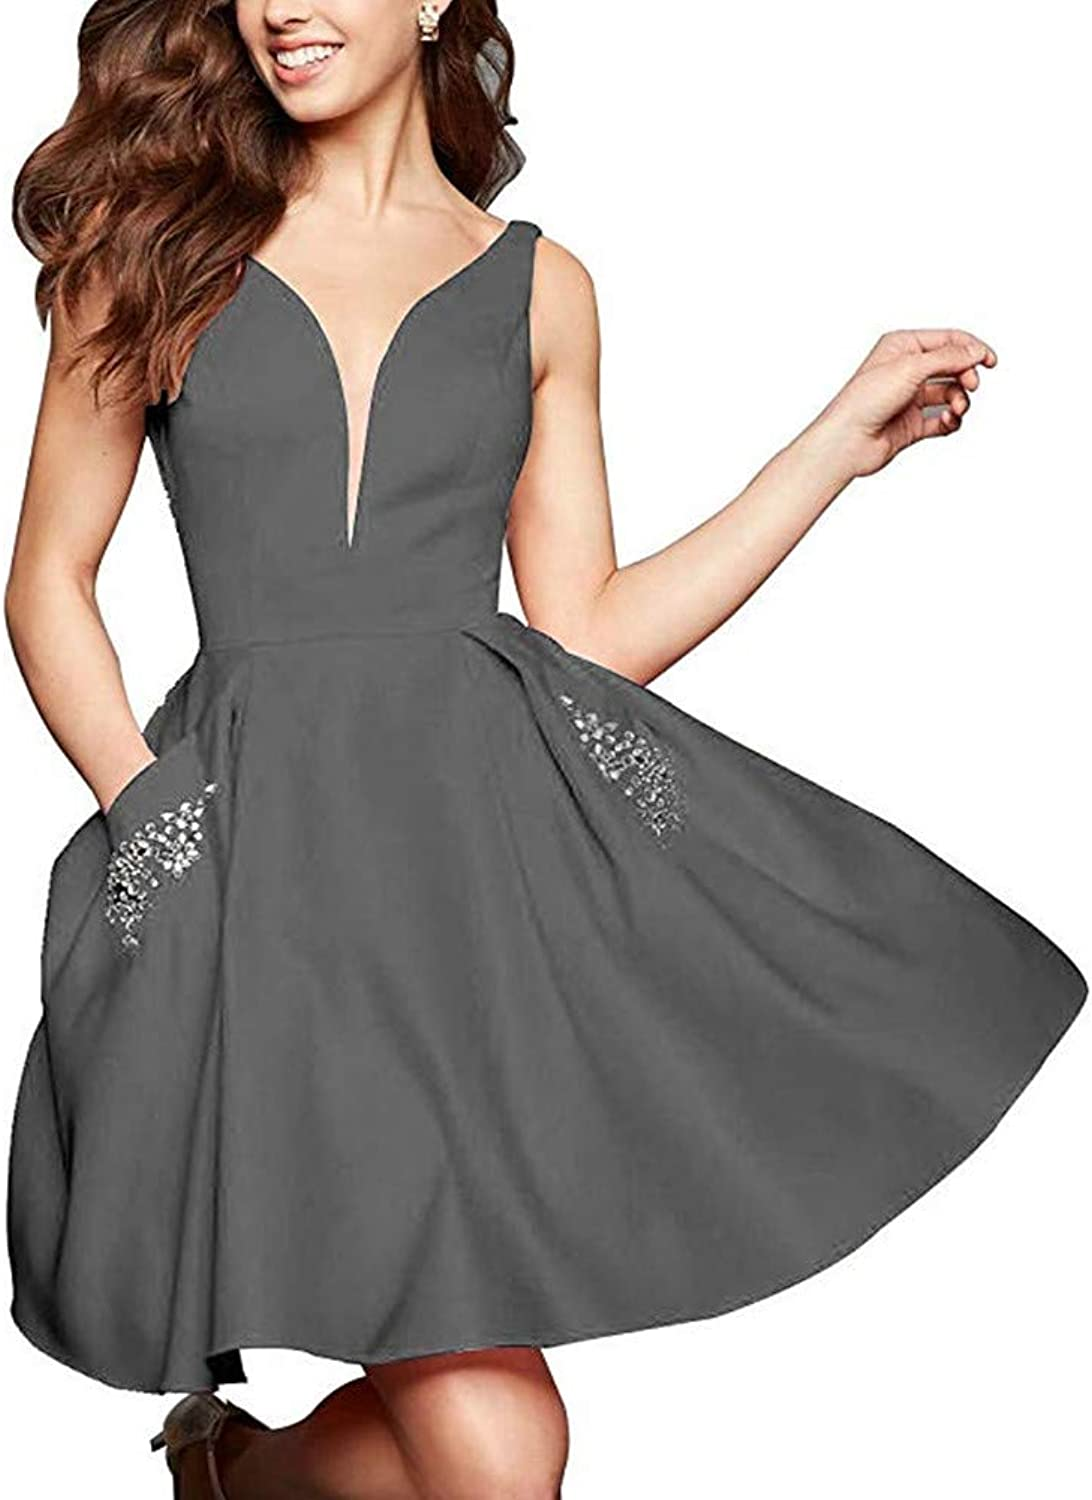 Women's Satin Beading Short Homecoming Dresses V Neck with Pocket Prom Party Gowns